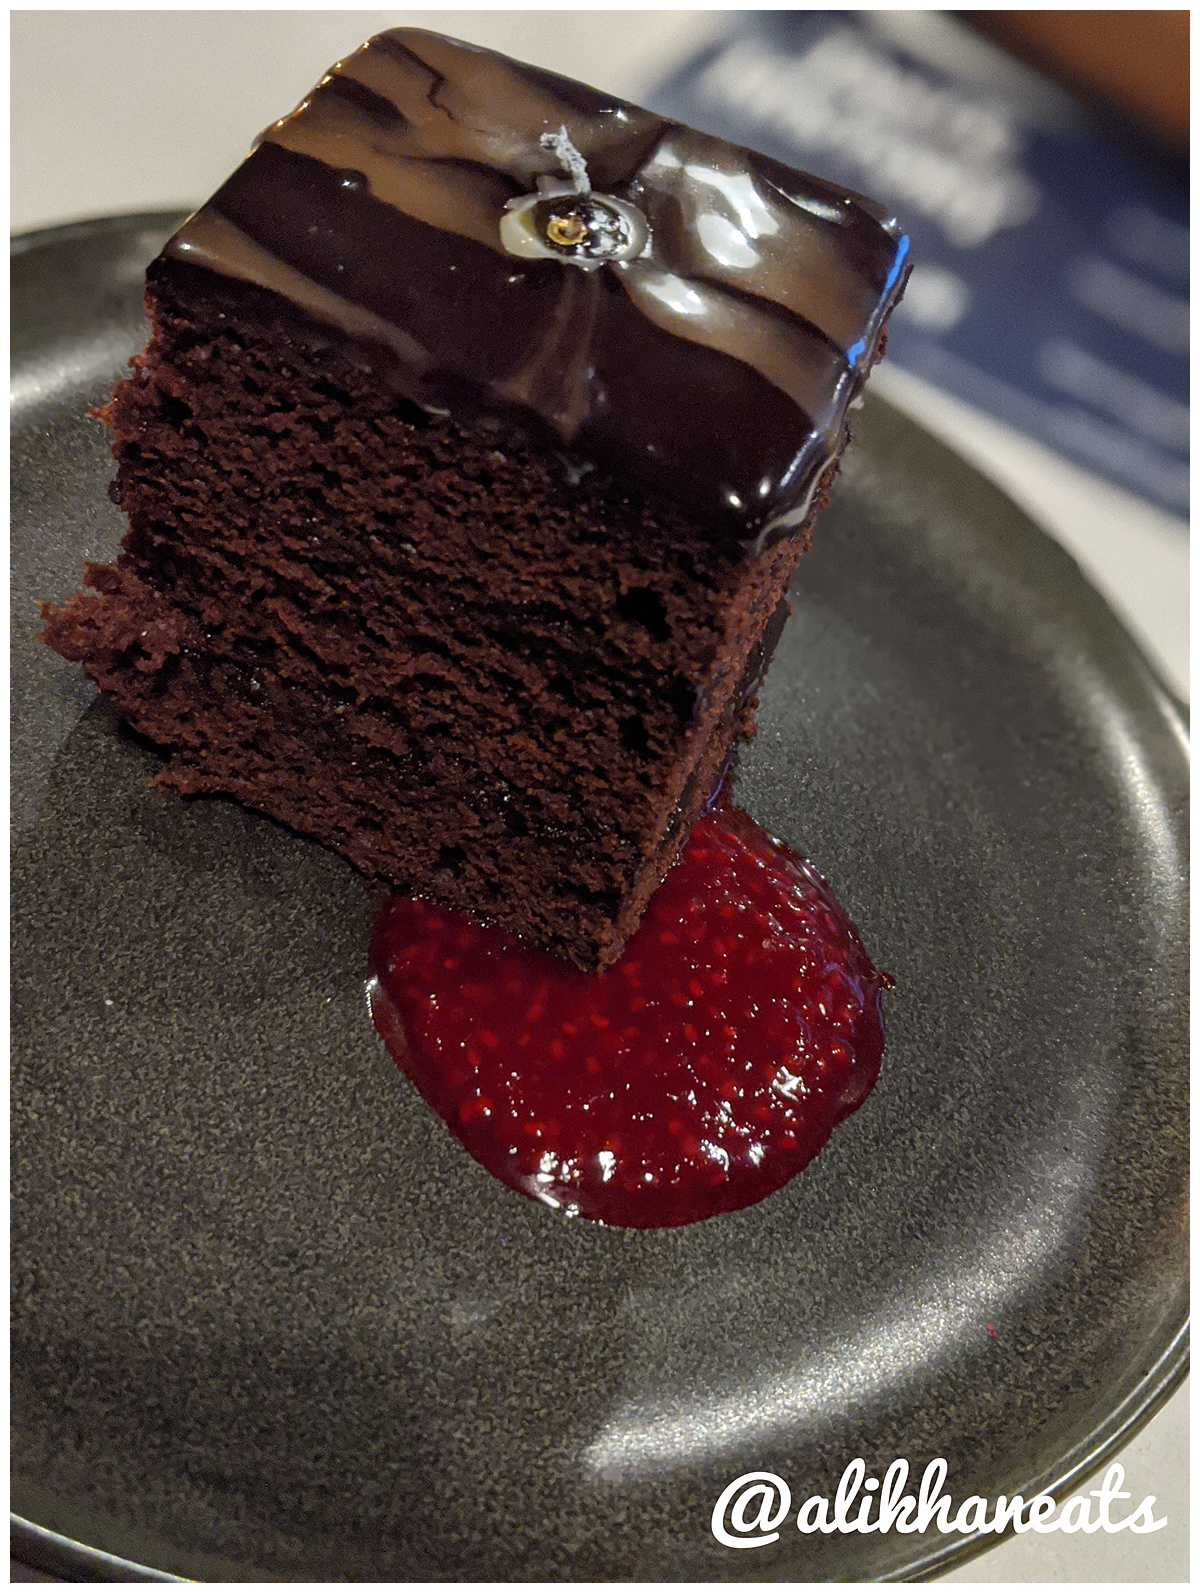 Old Forester tasting menu dessert course: chocolate black out cake